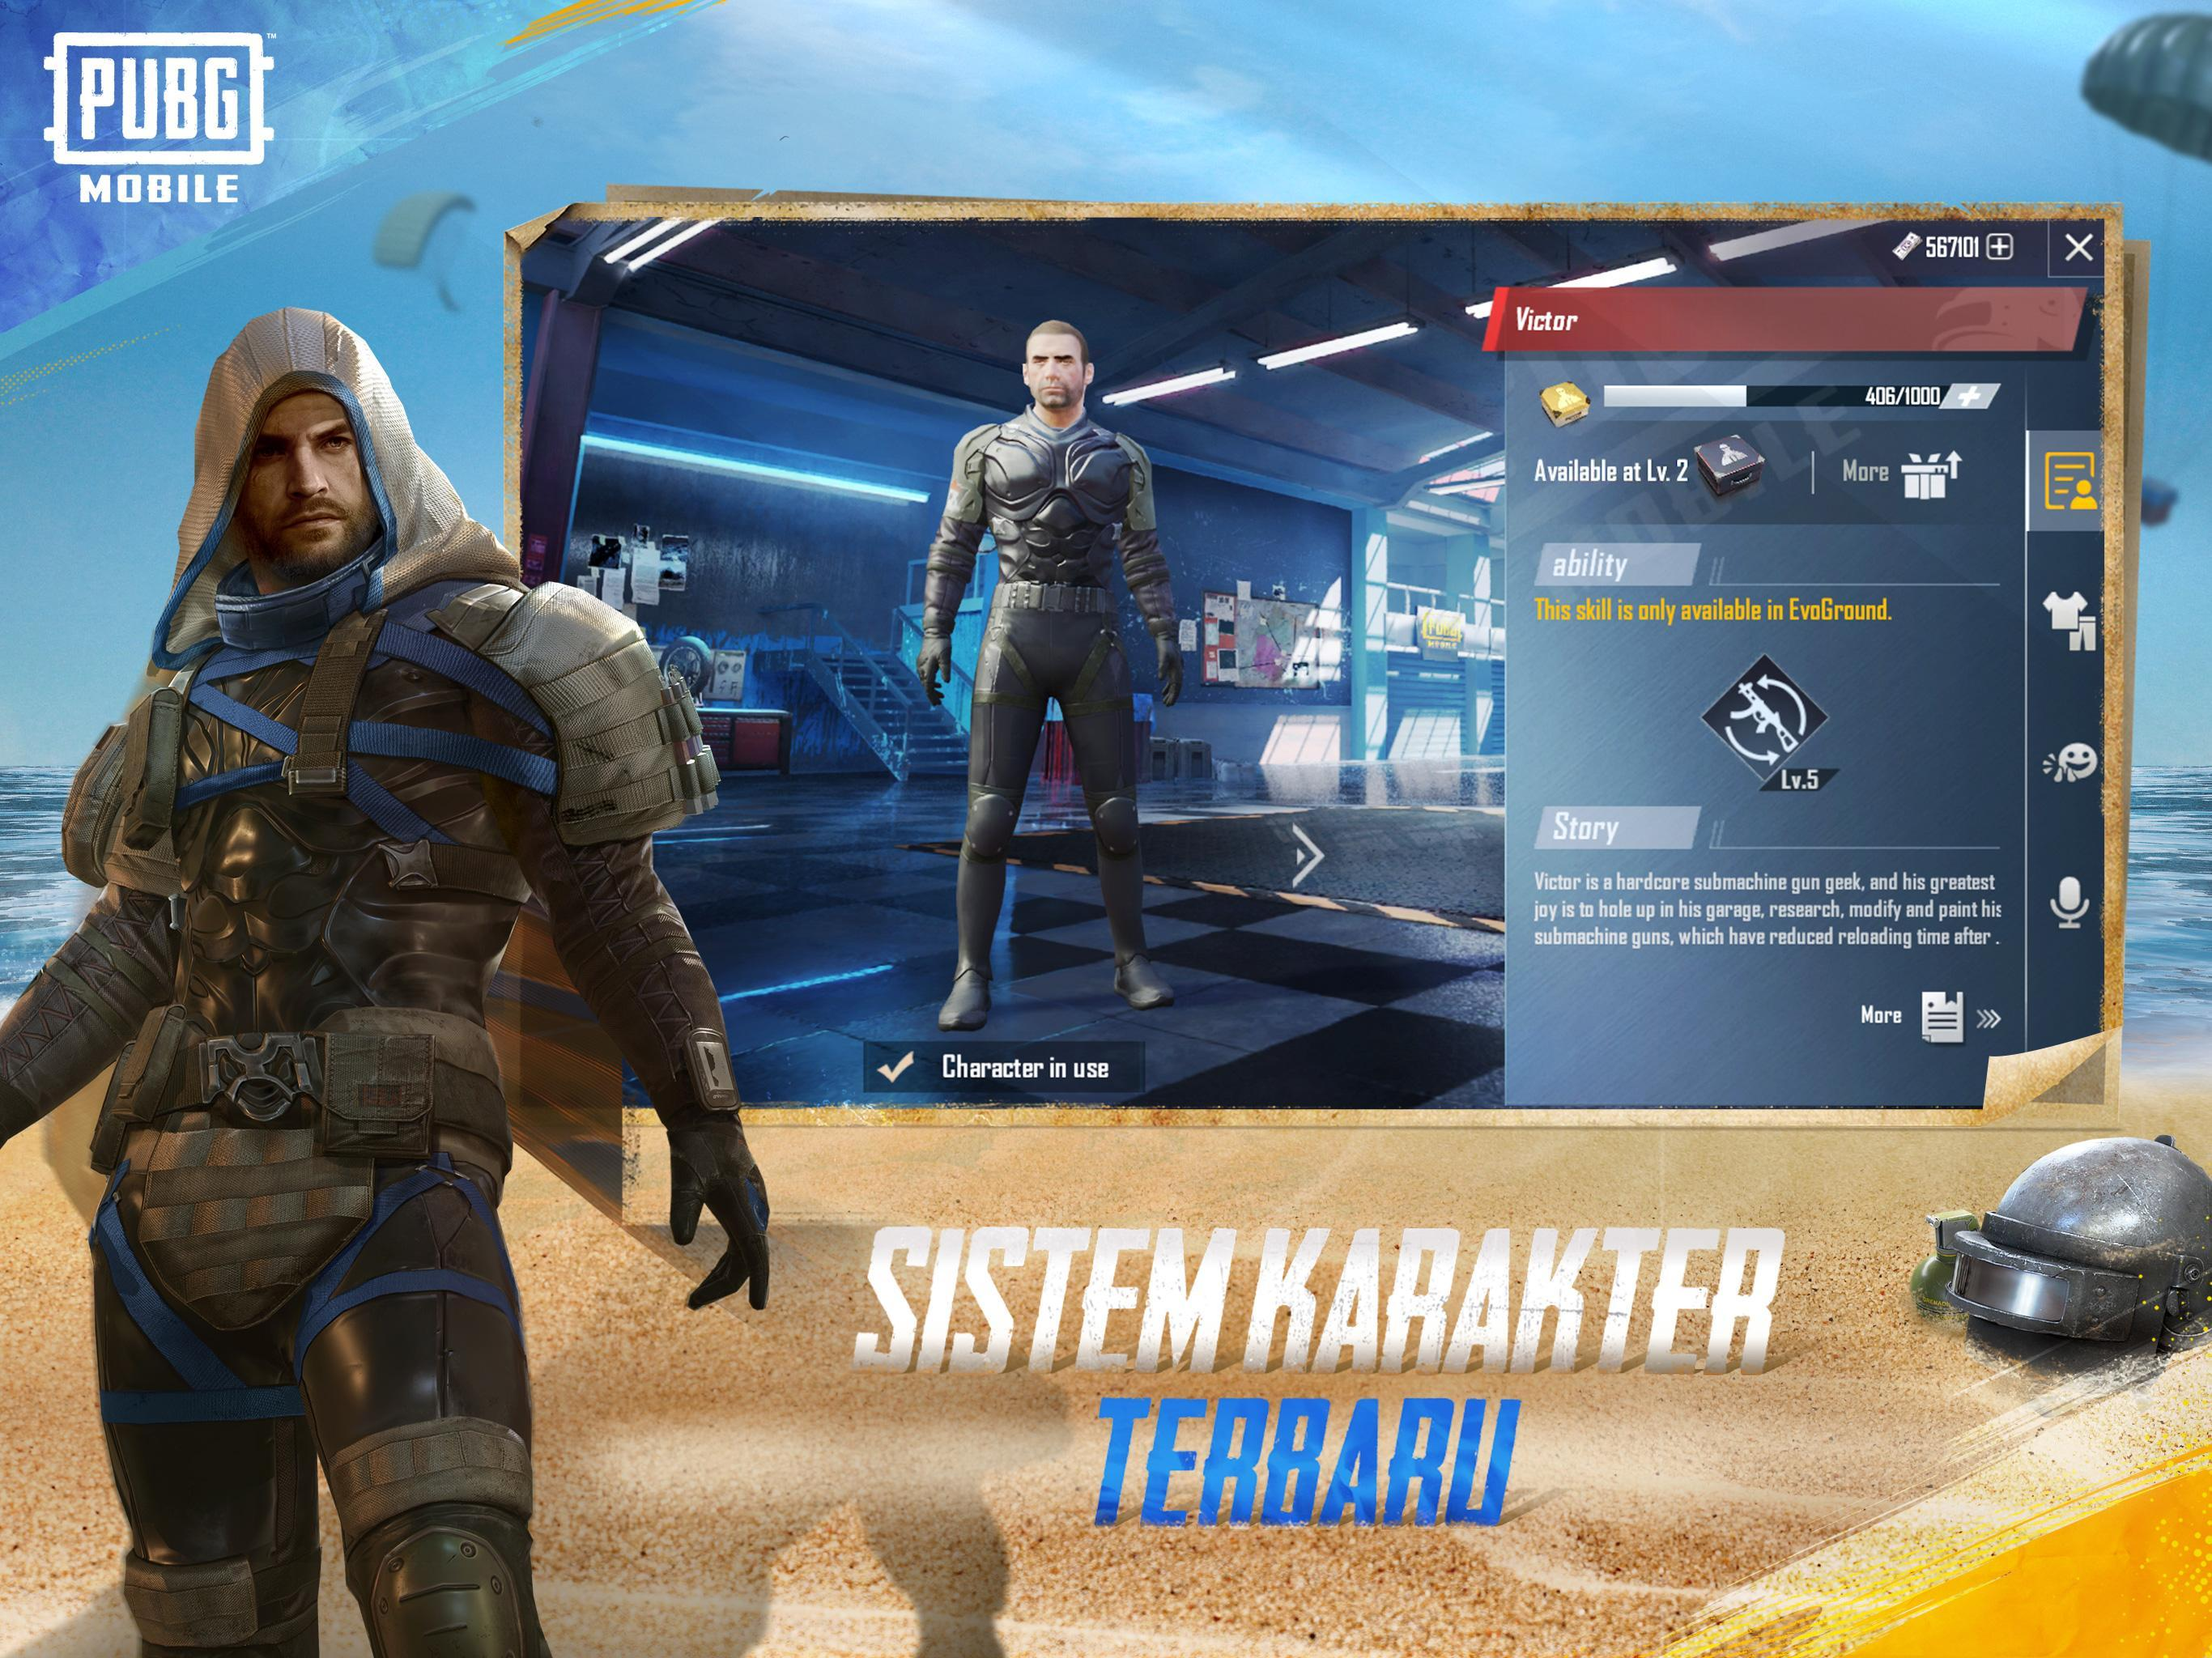 PUBG Mobile APK Download - Playerunknown Battlegrounds for